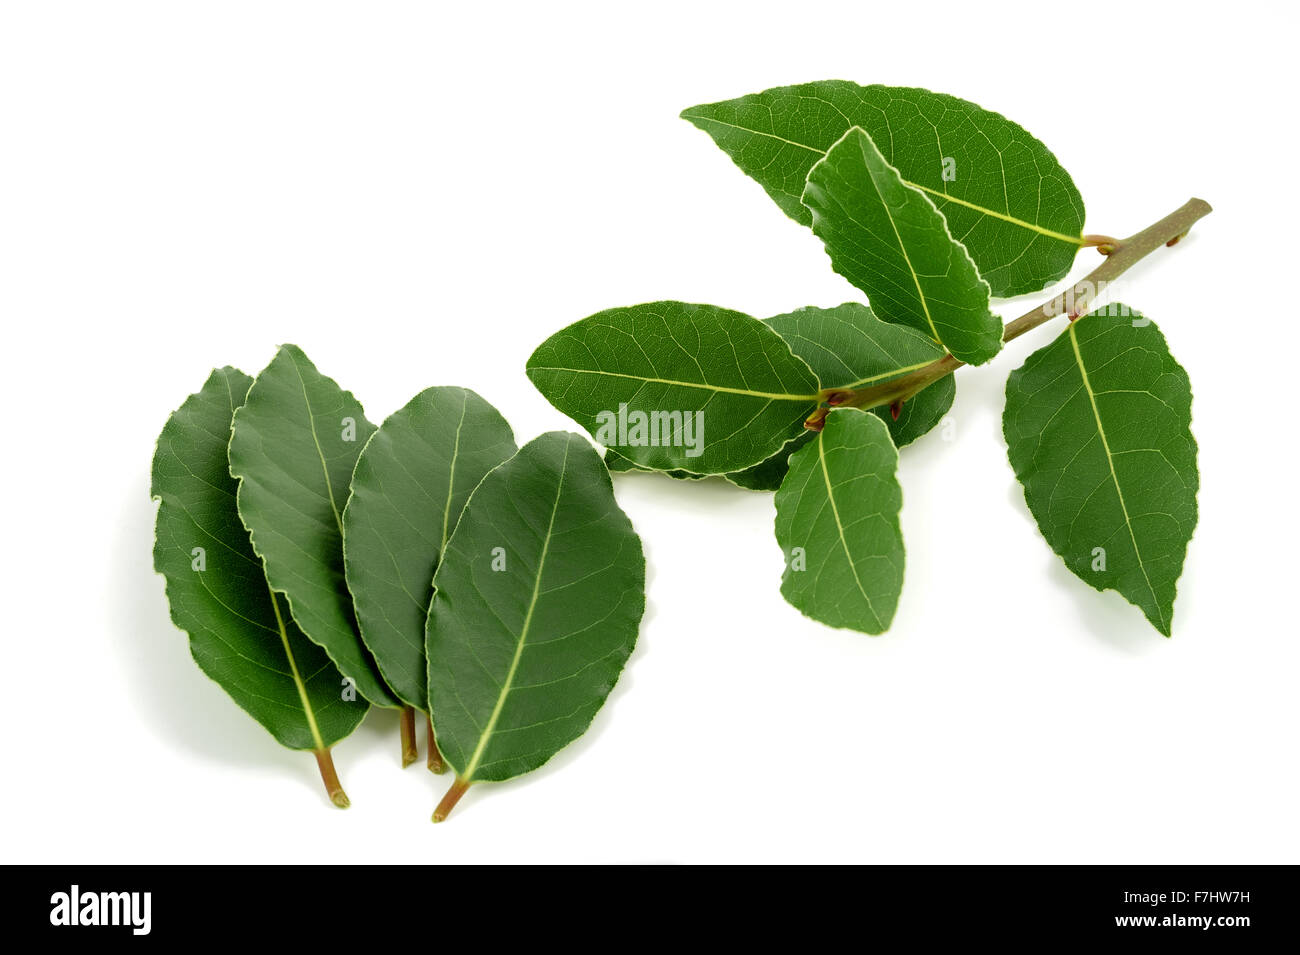 Laurel branch and leaves isolated on white background - Stock Image